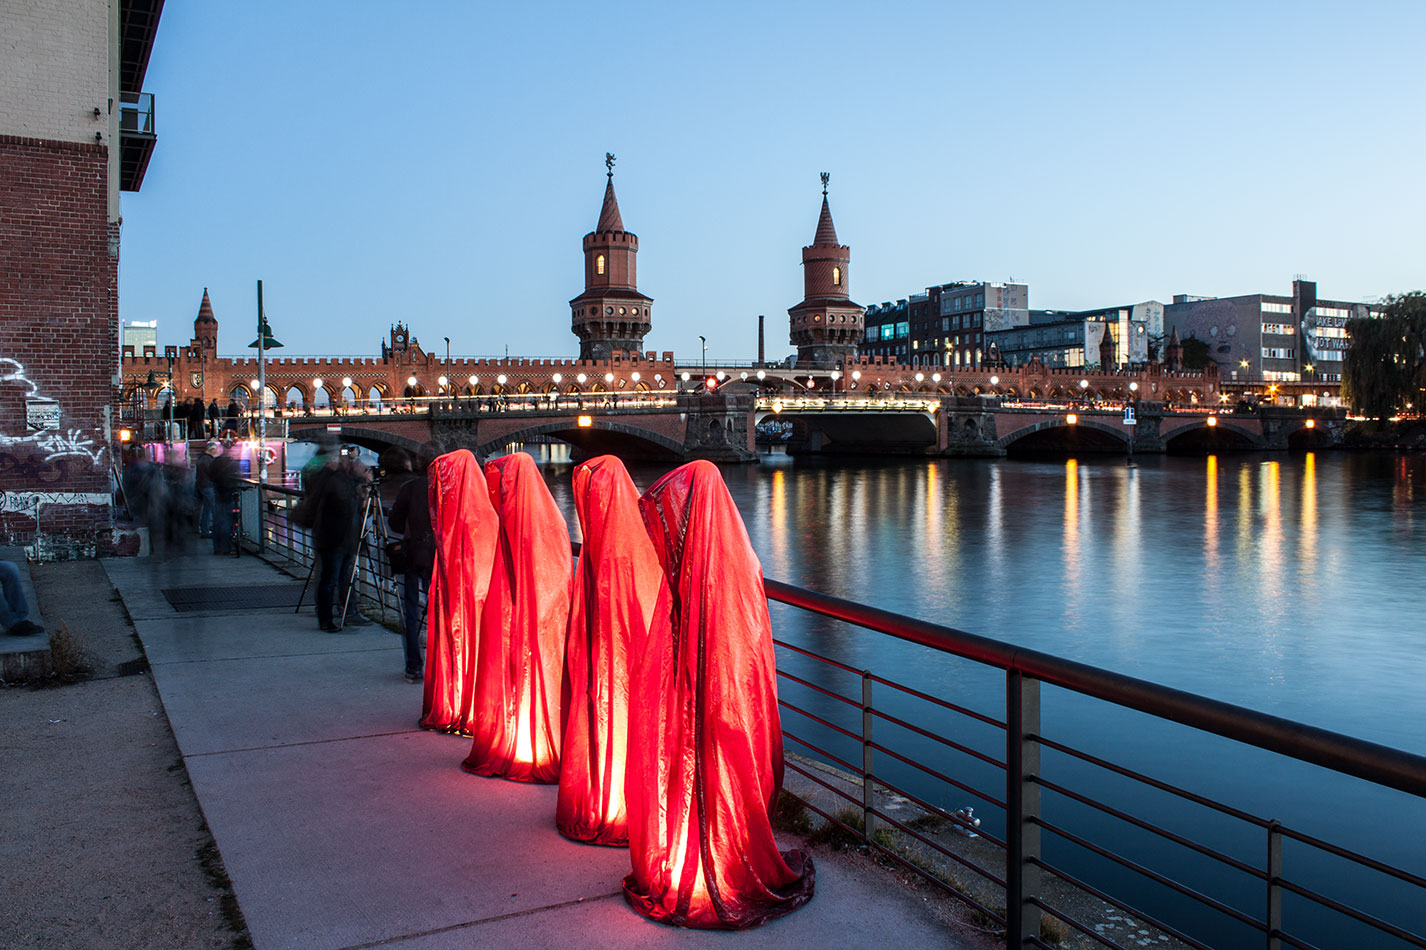 25-years-wallfall-berlin-germany-east-side-gallery-contemporary-fine-art-show-arts-design-guardians-of-time-manfred-kili-kielnhofer-4458